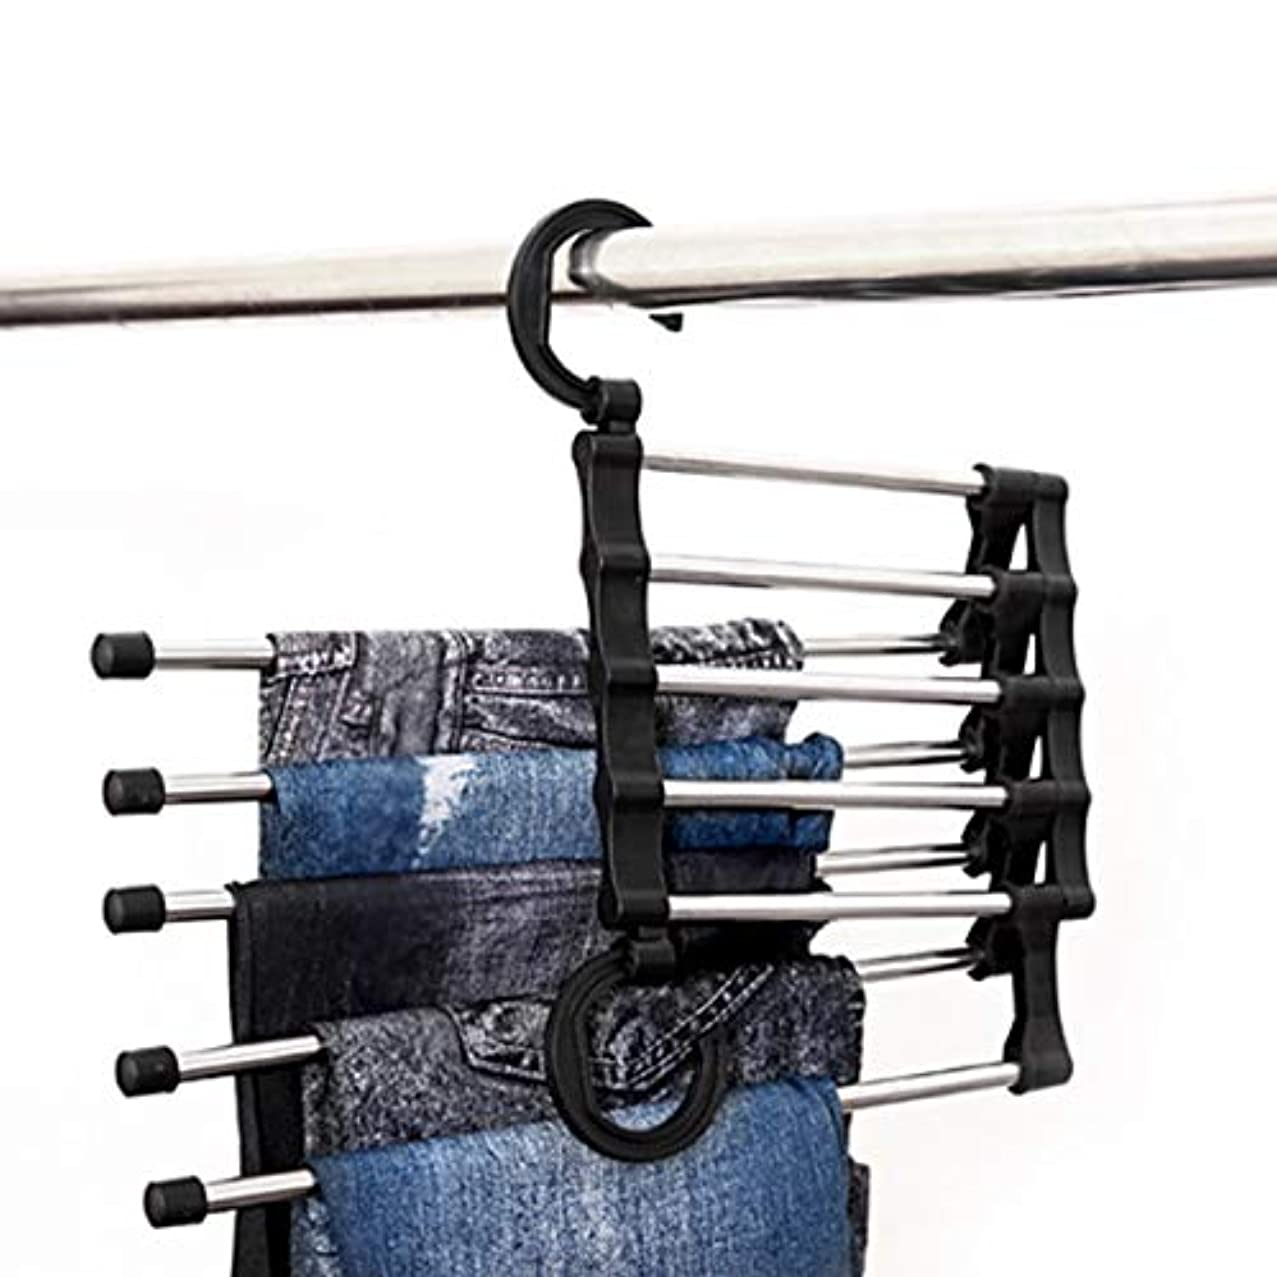 Multi-Purpose Stainless Steel Pants Hanger 5 in 1 Clothes Magic Hanger Space Saving Clothes Folding Hanging Storage Rack (Color : Black)